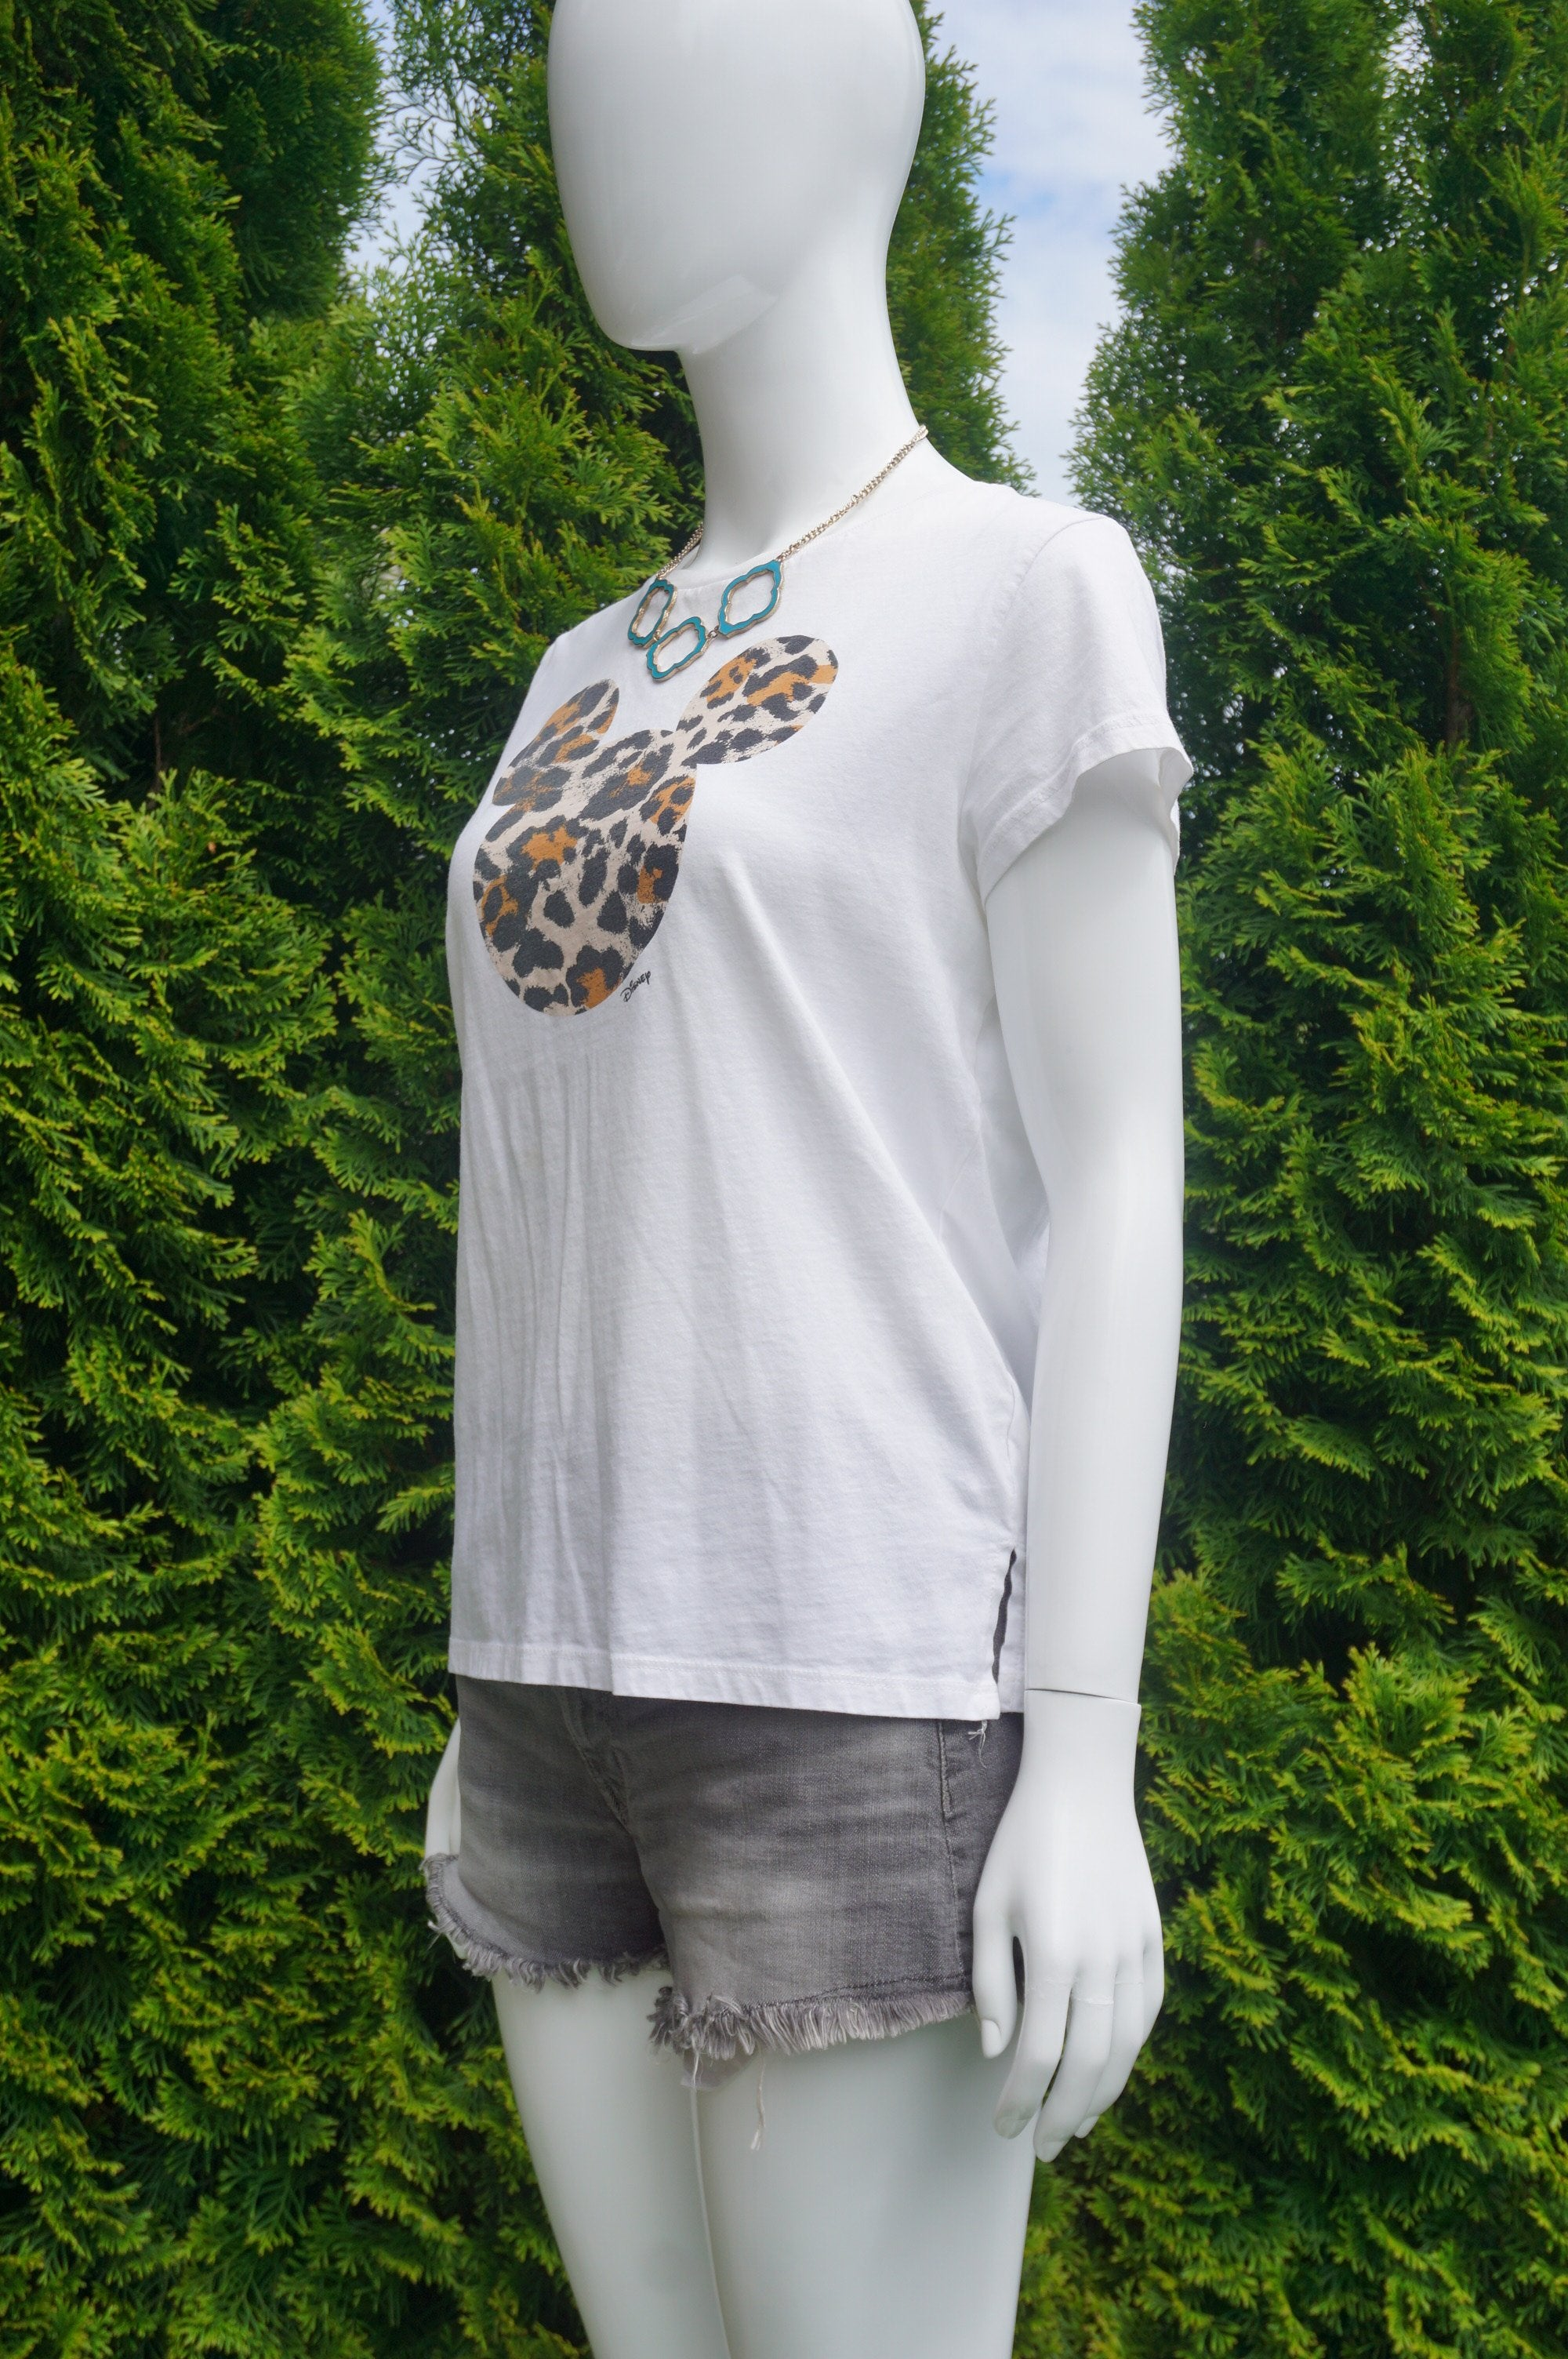 H&M Leopard Print Mickey Mouse T-shirt, Cute t-shirt with unique leopard print Mickey Mouse. Try wearing it tucked in with a pair of casual jeans., White, 100% Cotton, women's Tops, women's White Tops, H&M women's Tops, mickey mouse t-shirt, leopard print disney mickey mouse t-shirt. Leopard mickey mousee, disney t-shirt